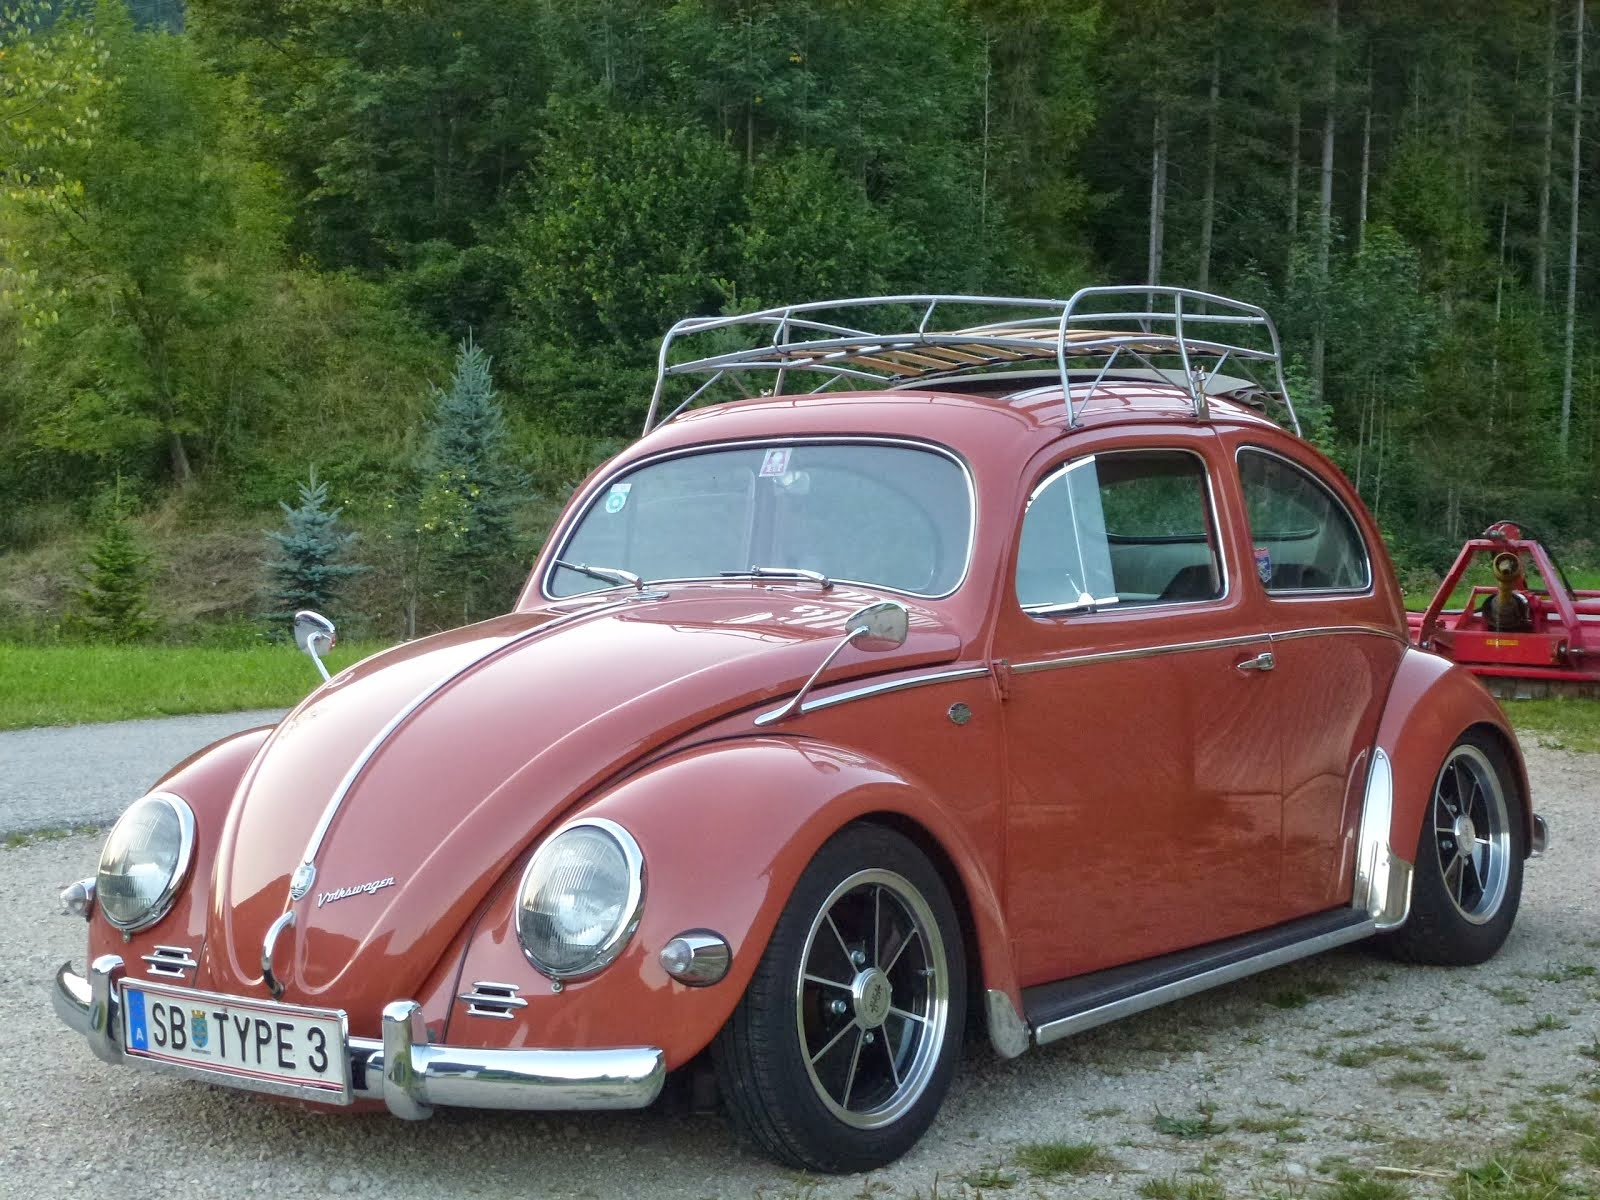 my ex oval coral red 1955 Export bug